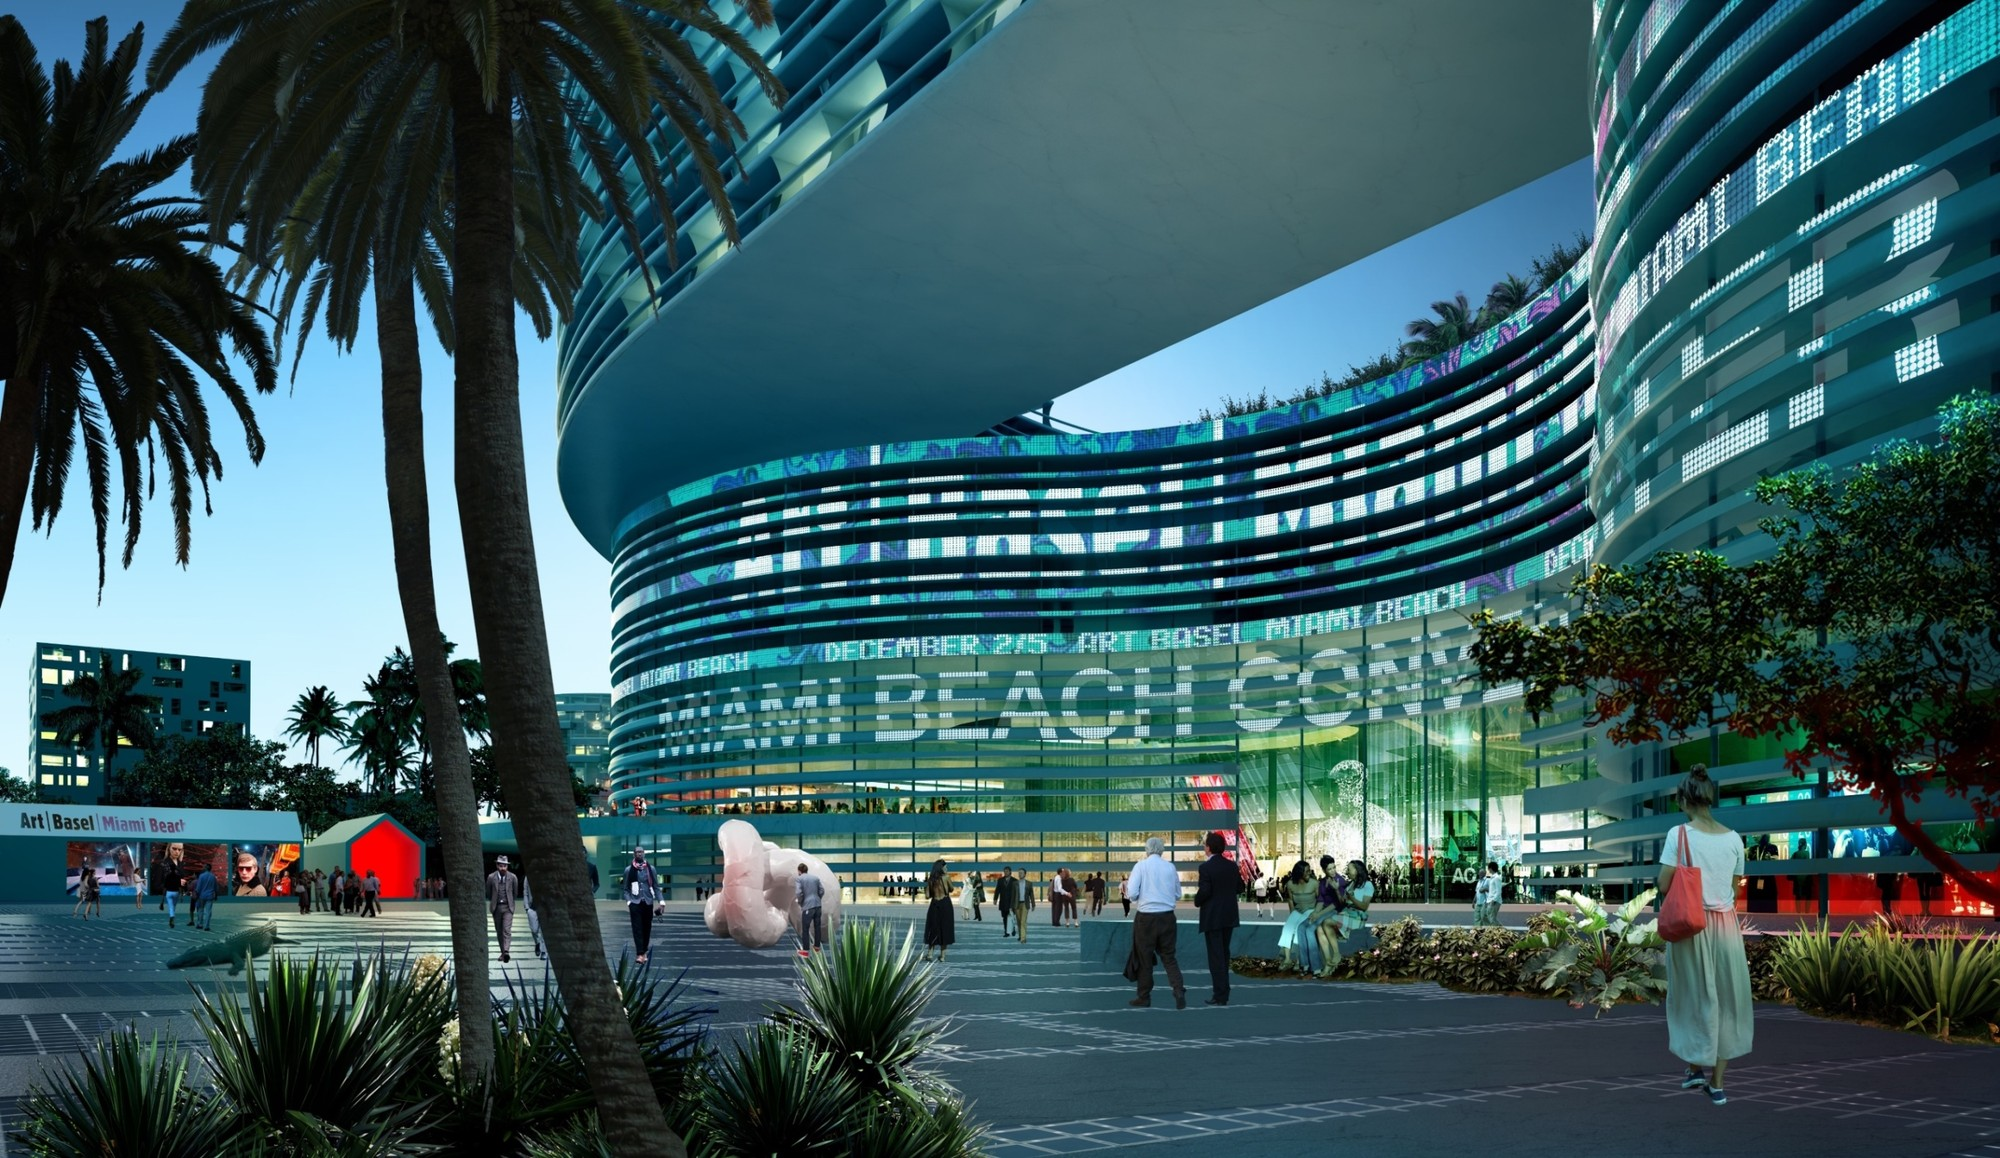 Miami Beach Convention Center Winning Proposal / South Beach ACE, Courtesy of OMA